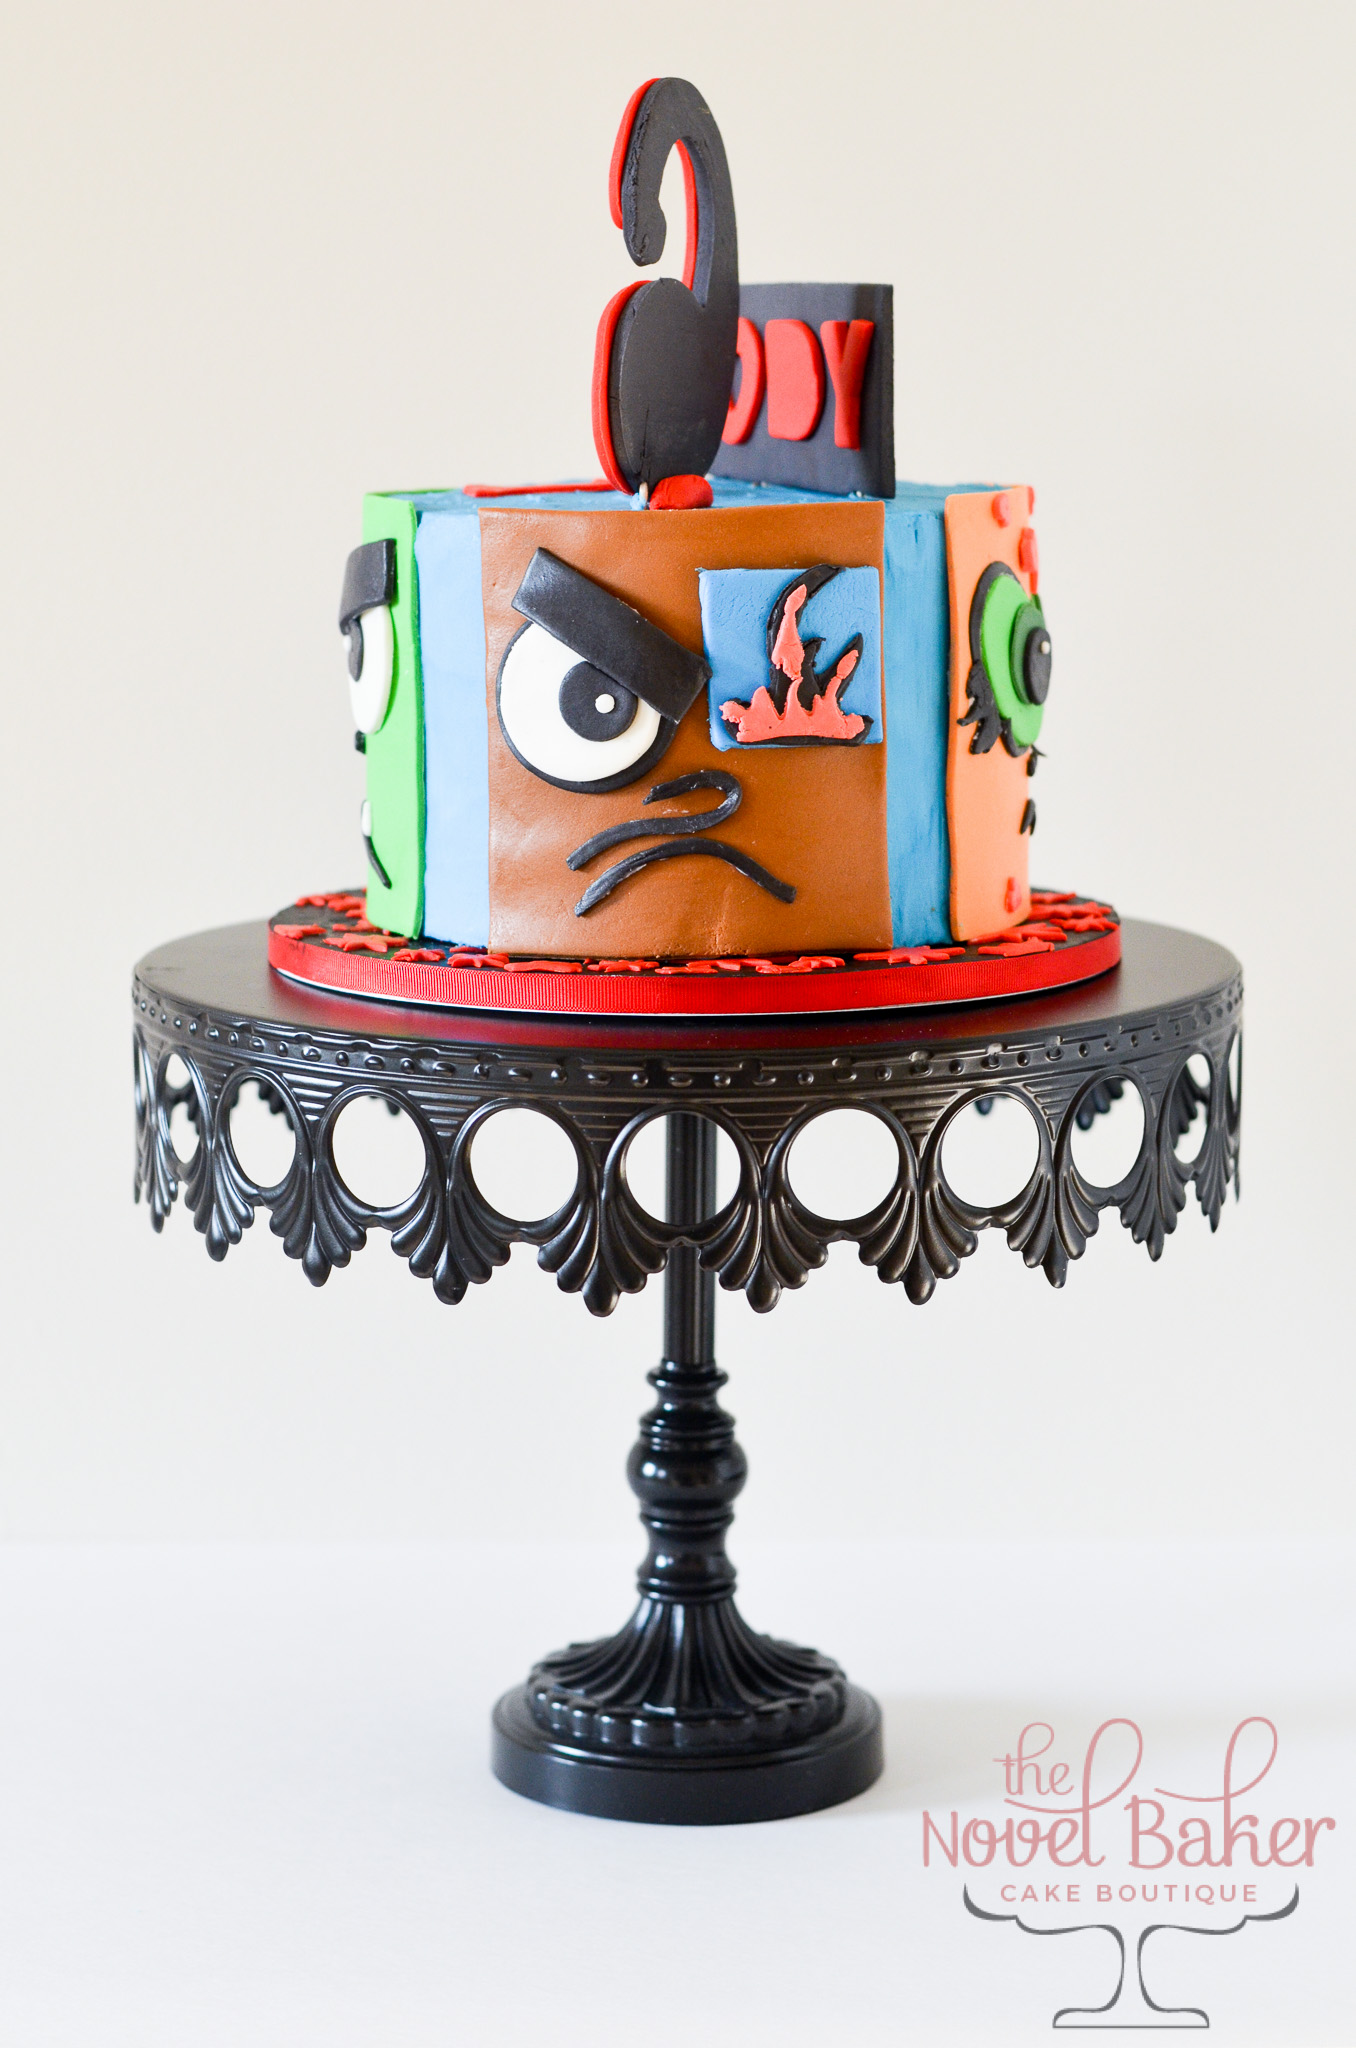 Single tier buttercream cake with 4 fondant panels wrapping the sides of the cake, each panel with eyes, nose, and mouth resembling a different TitanTeens Go Character.